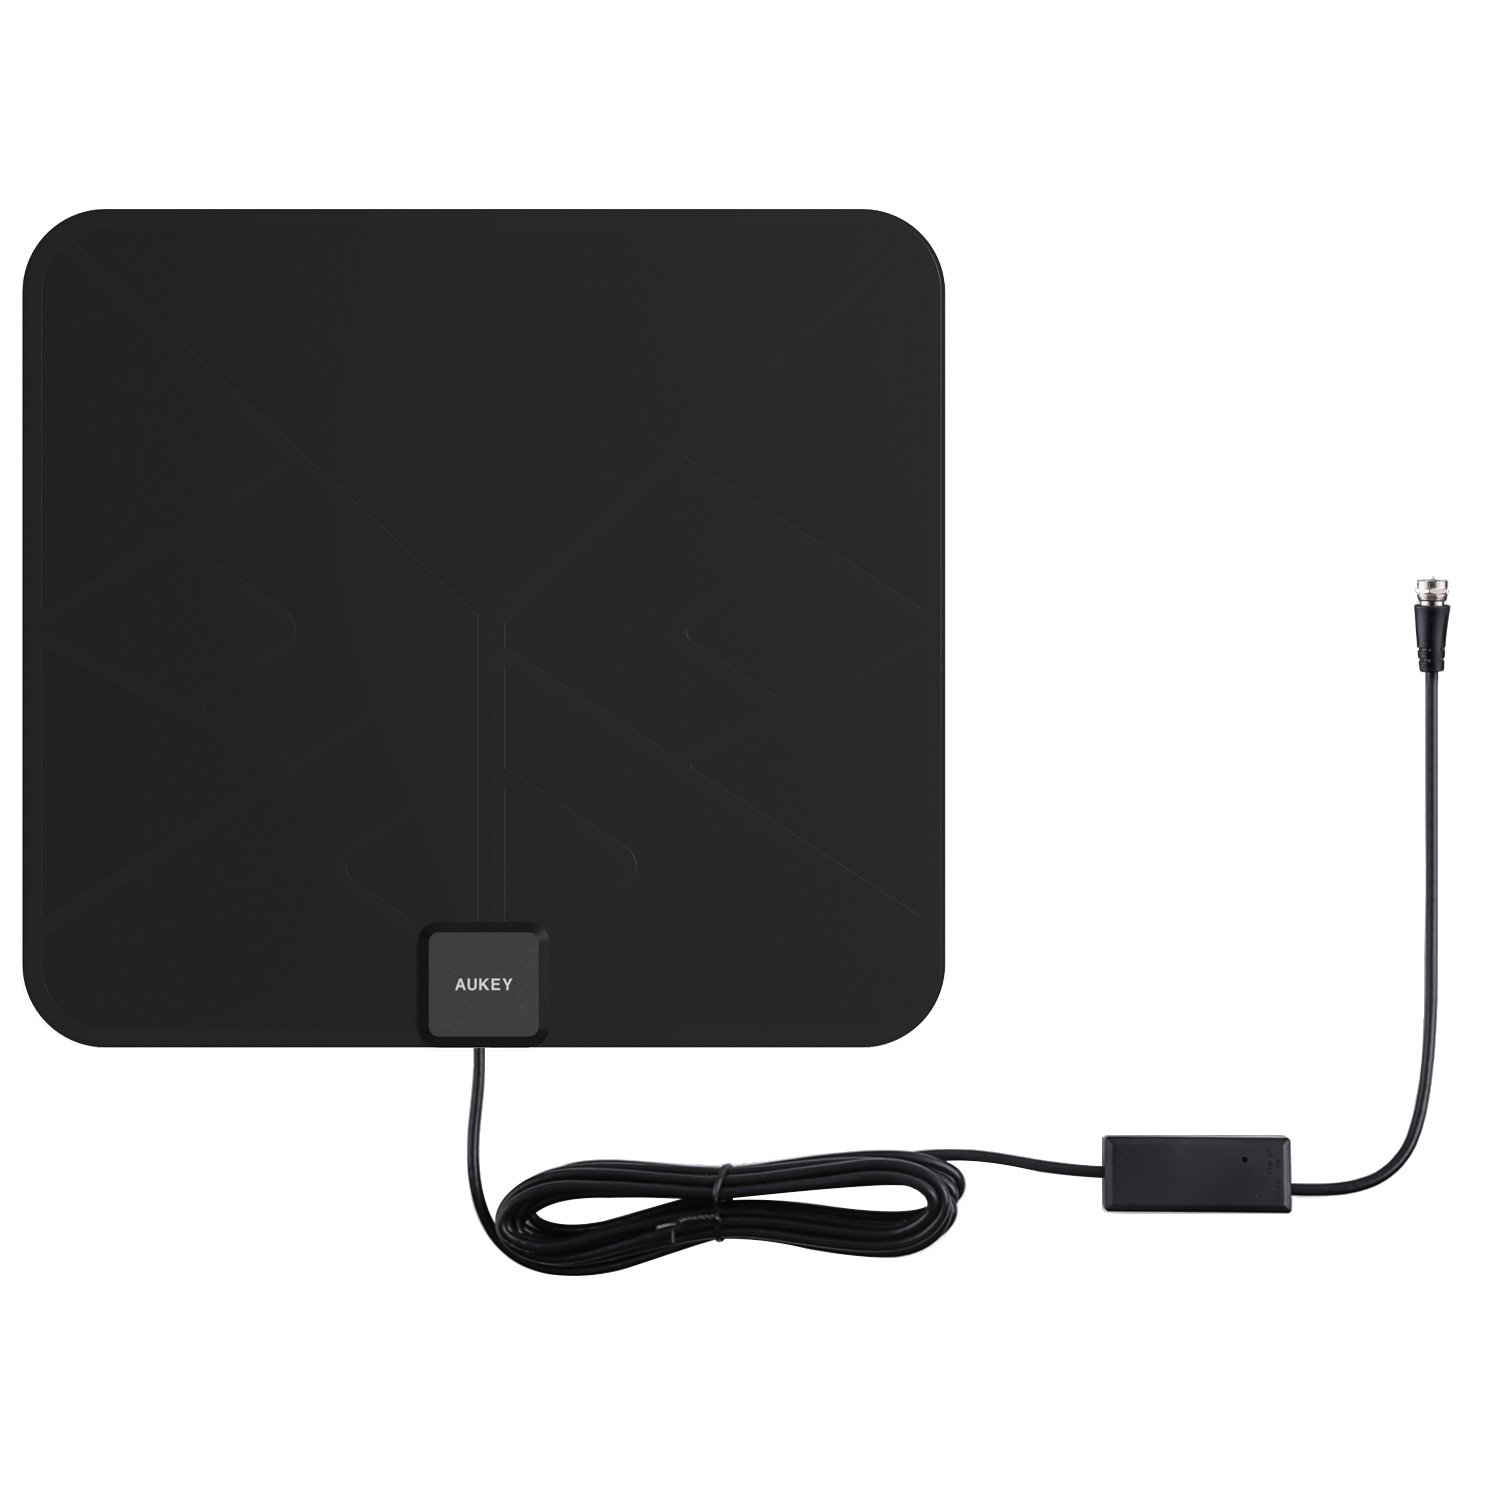 AUKEY HDTV Antenna, Amplified Indoor Digital TV Antenna with In-line Amplifier Signal Booster and 9.8ft Coax Cable for HDTVs (Black)